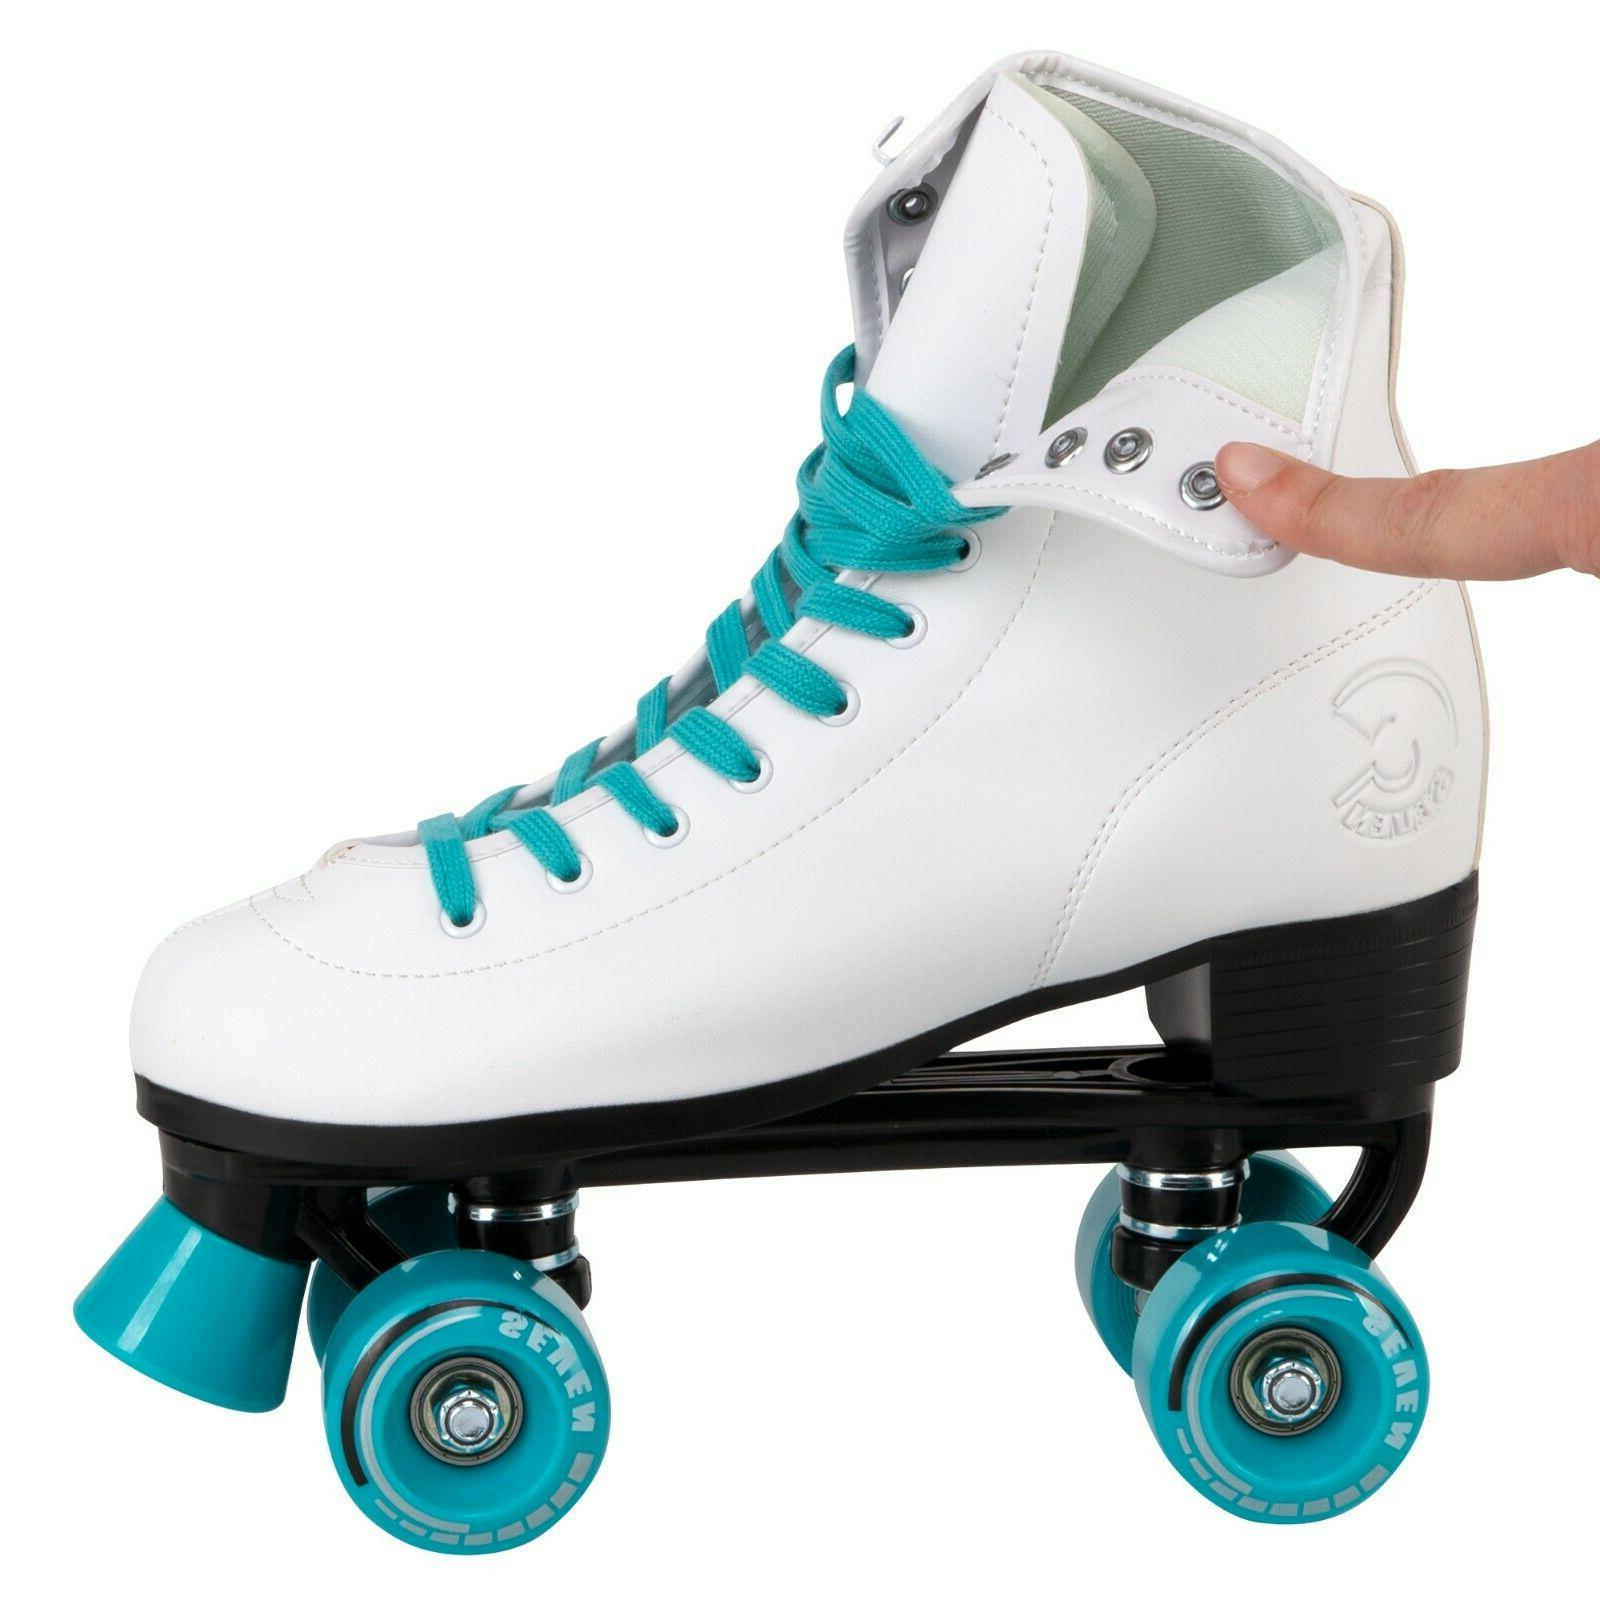 C7skates Teal Blue Faux Leather Girls Christmas